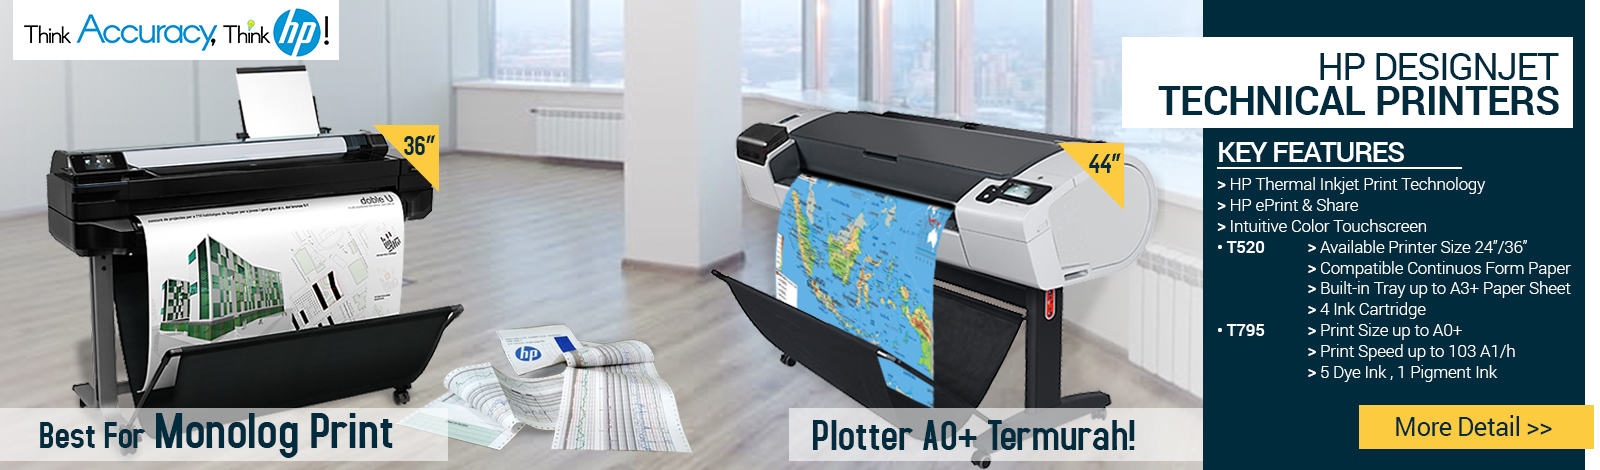 hp designjet technical printers